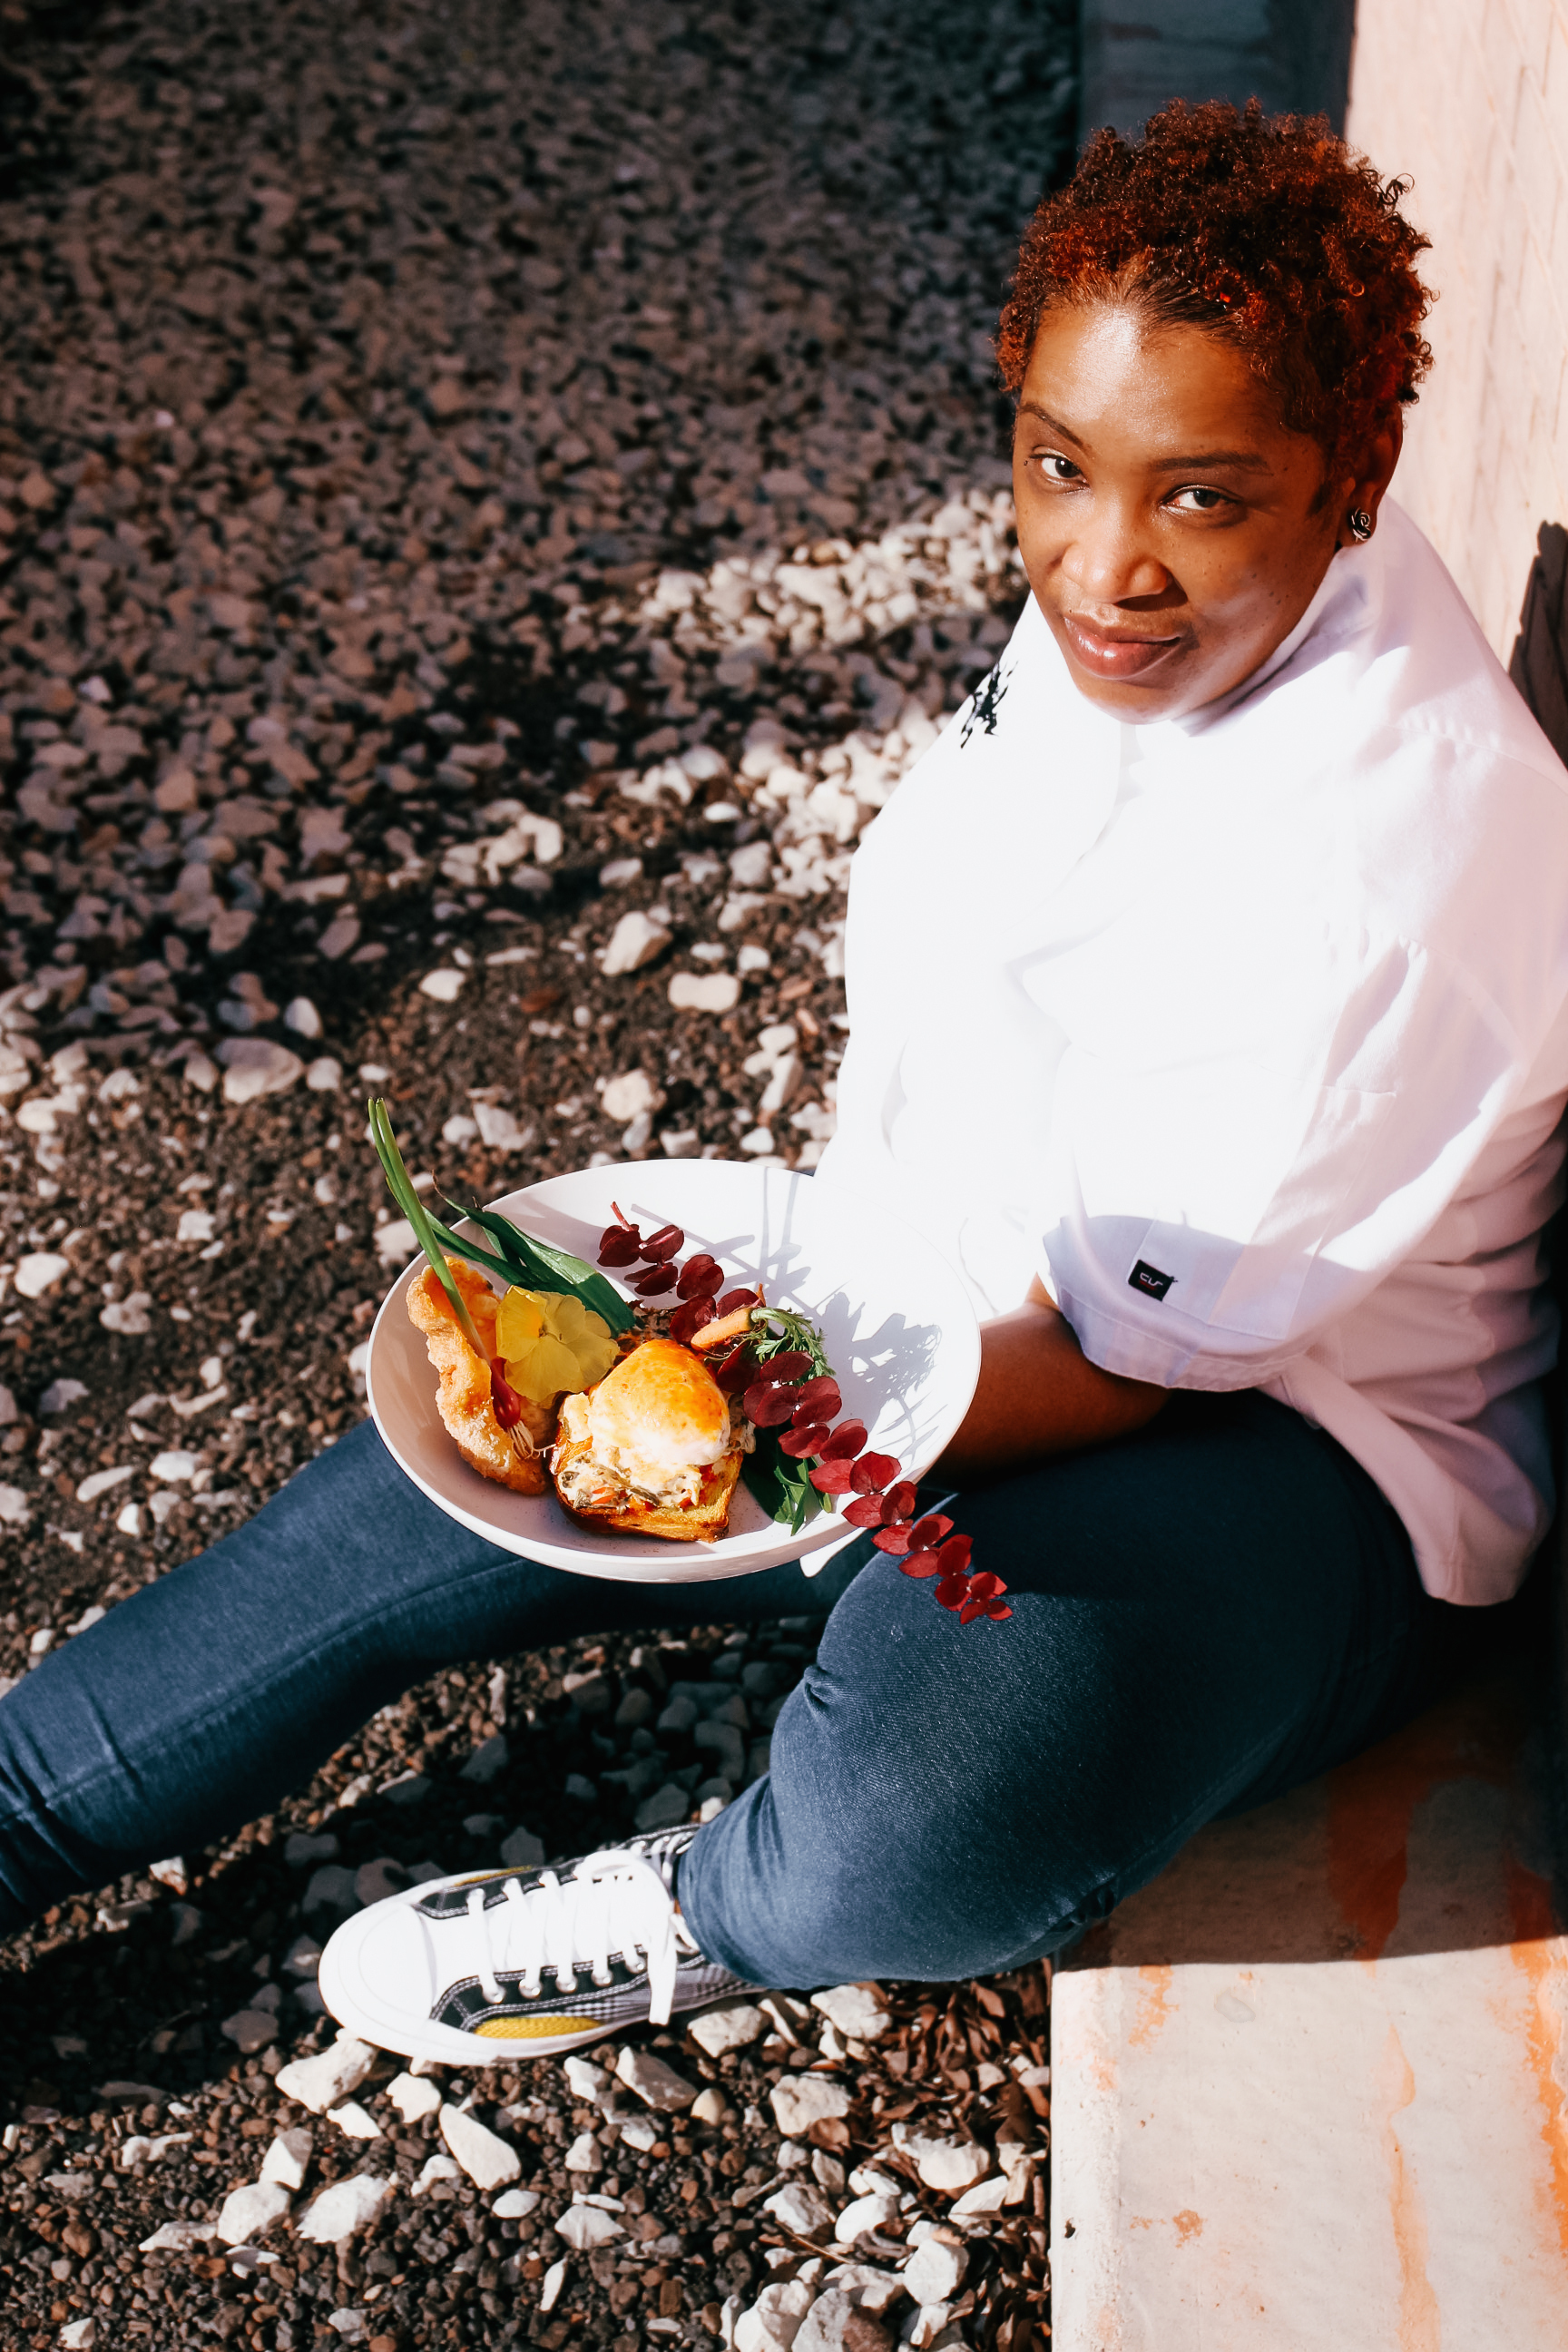 After the pandemic shuttered Teertsemasesottehg, the just-beginning-to-blossom, upscale catering and pop-up supper club business she operates across Chicagoland, Chef Q. Ibraheem began distributing fancily prepared, farm-to-table meals to hungry families for free. The American Red Cross of Greater Chicago named her 2021 Disaster Services Hero. Now she has been named a CNN Hero.